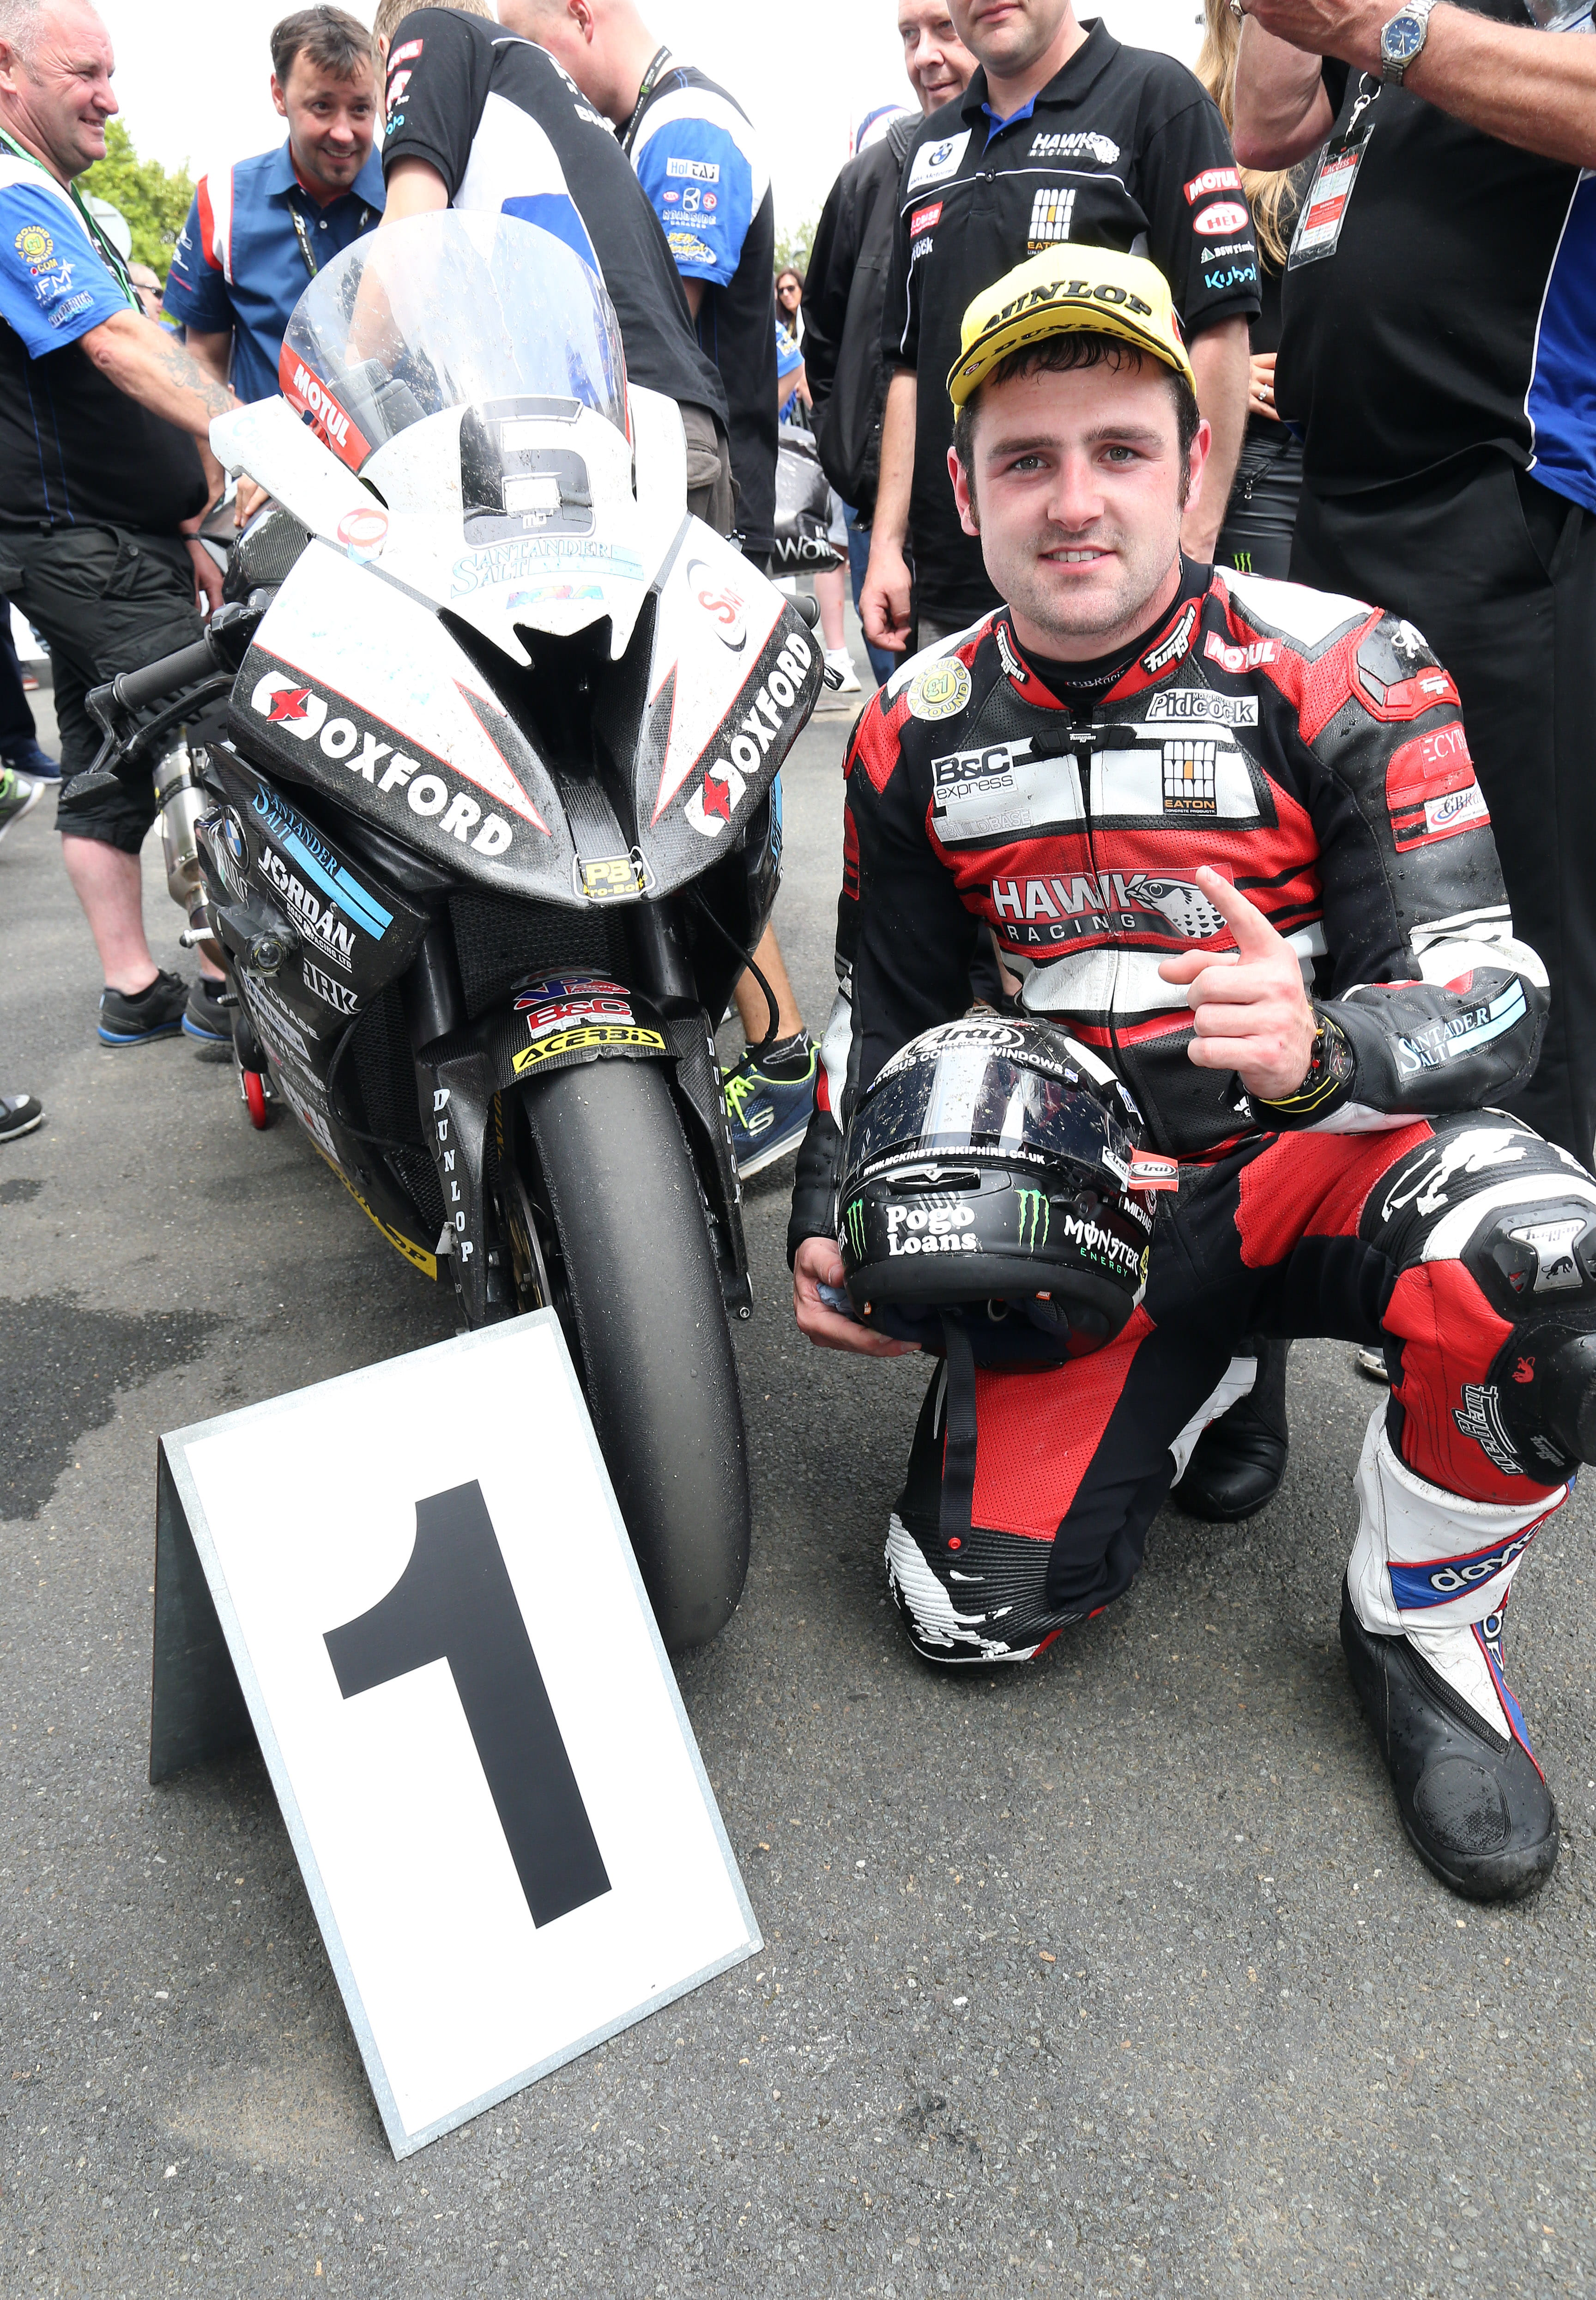 Dunlop smashed the lap record